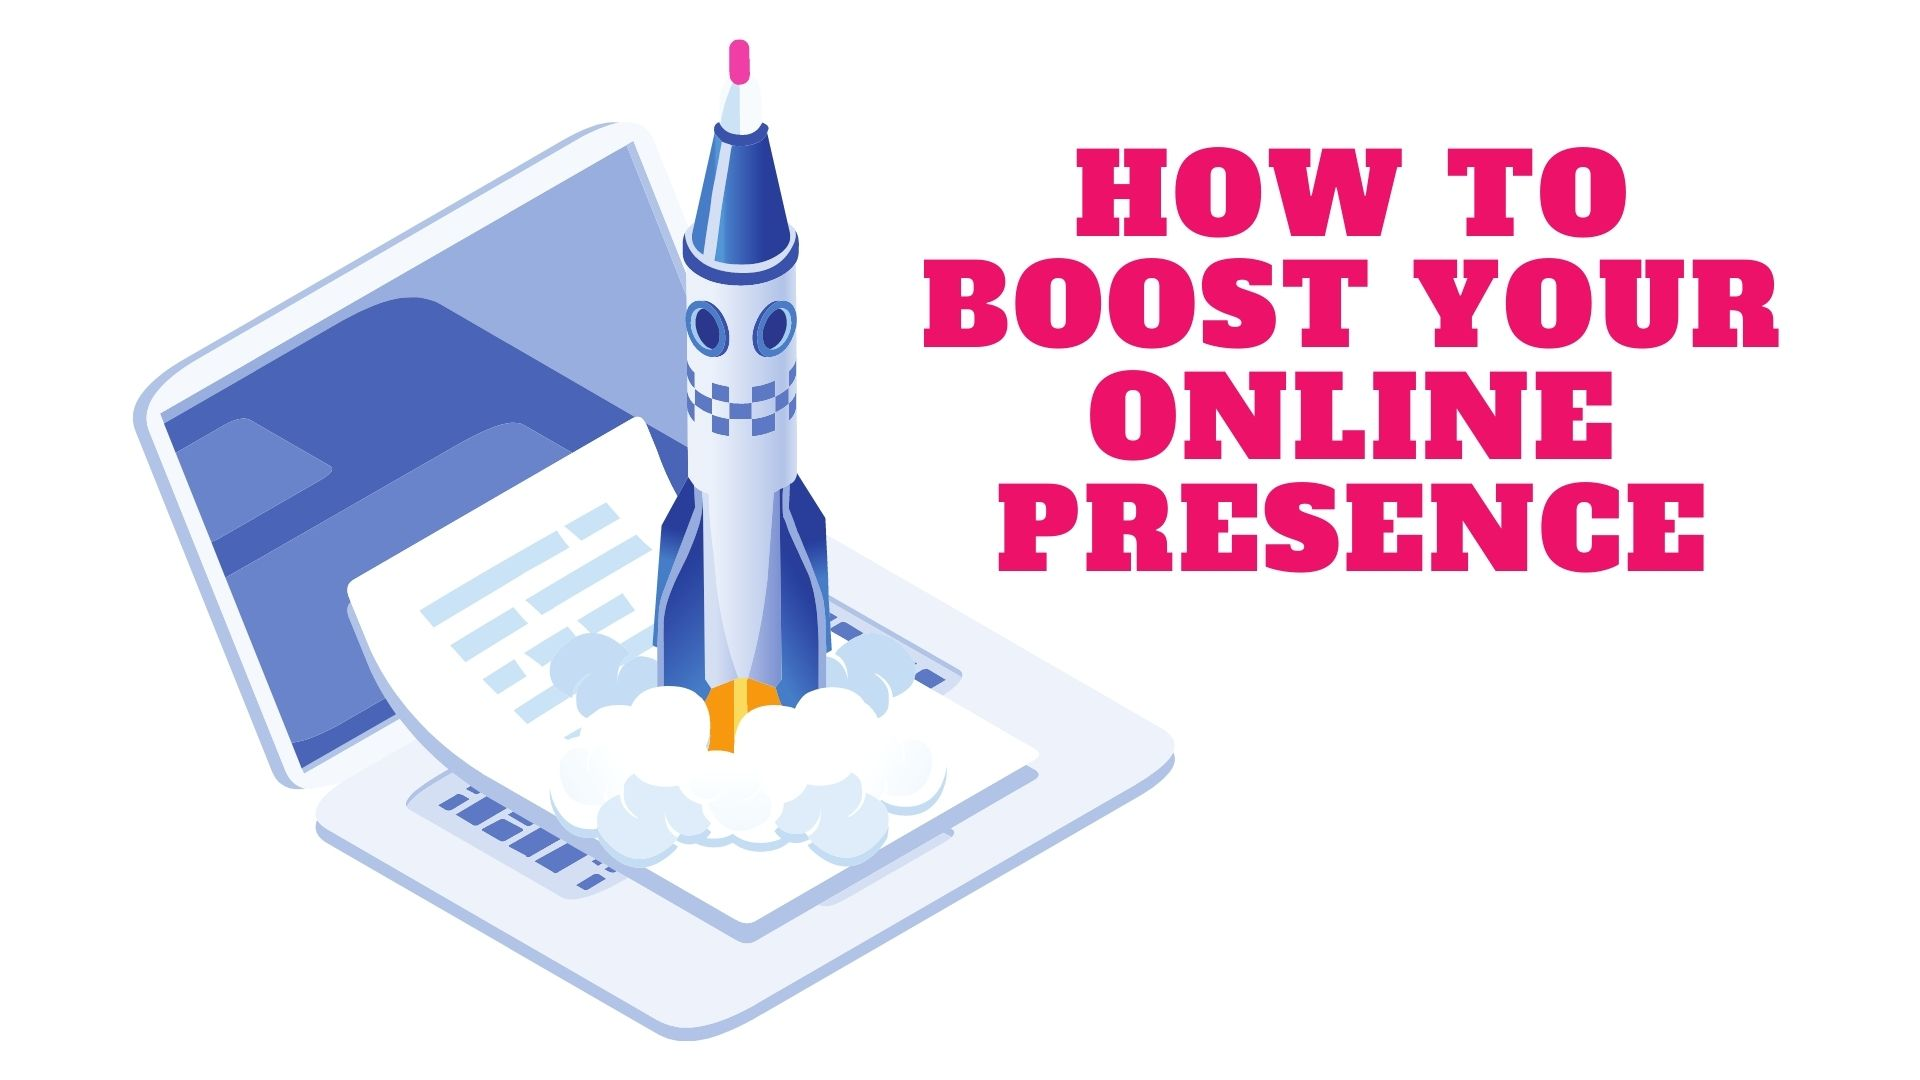 How to Boost Your Online Presence